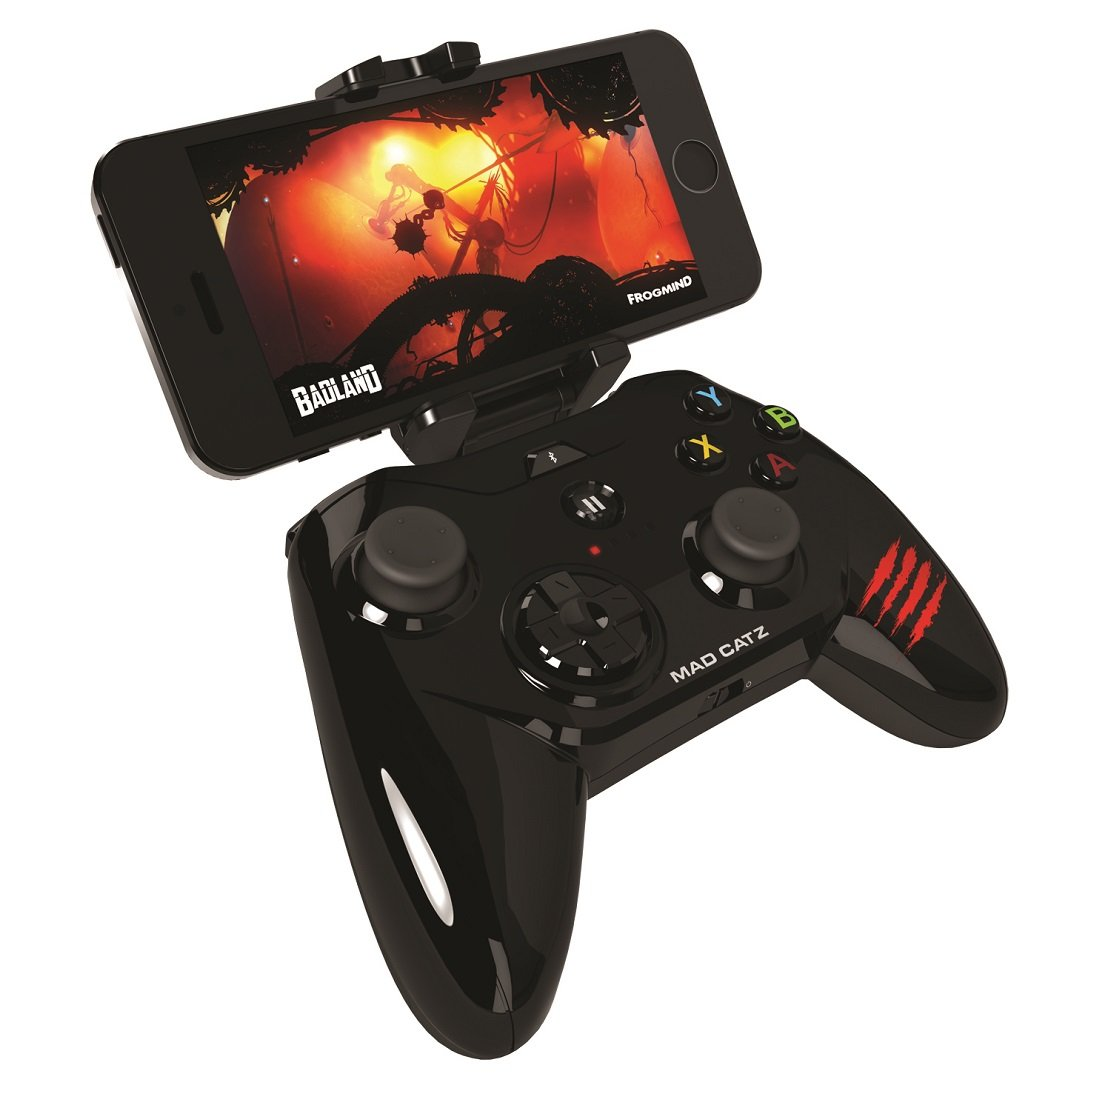 Mad Catz Micro C.T.R.L.i Mobile Gamepad Made for Apple iPod, iPhone, and iPad by Mad Catz